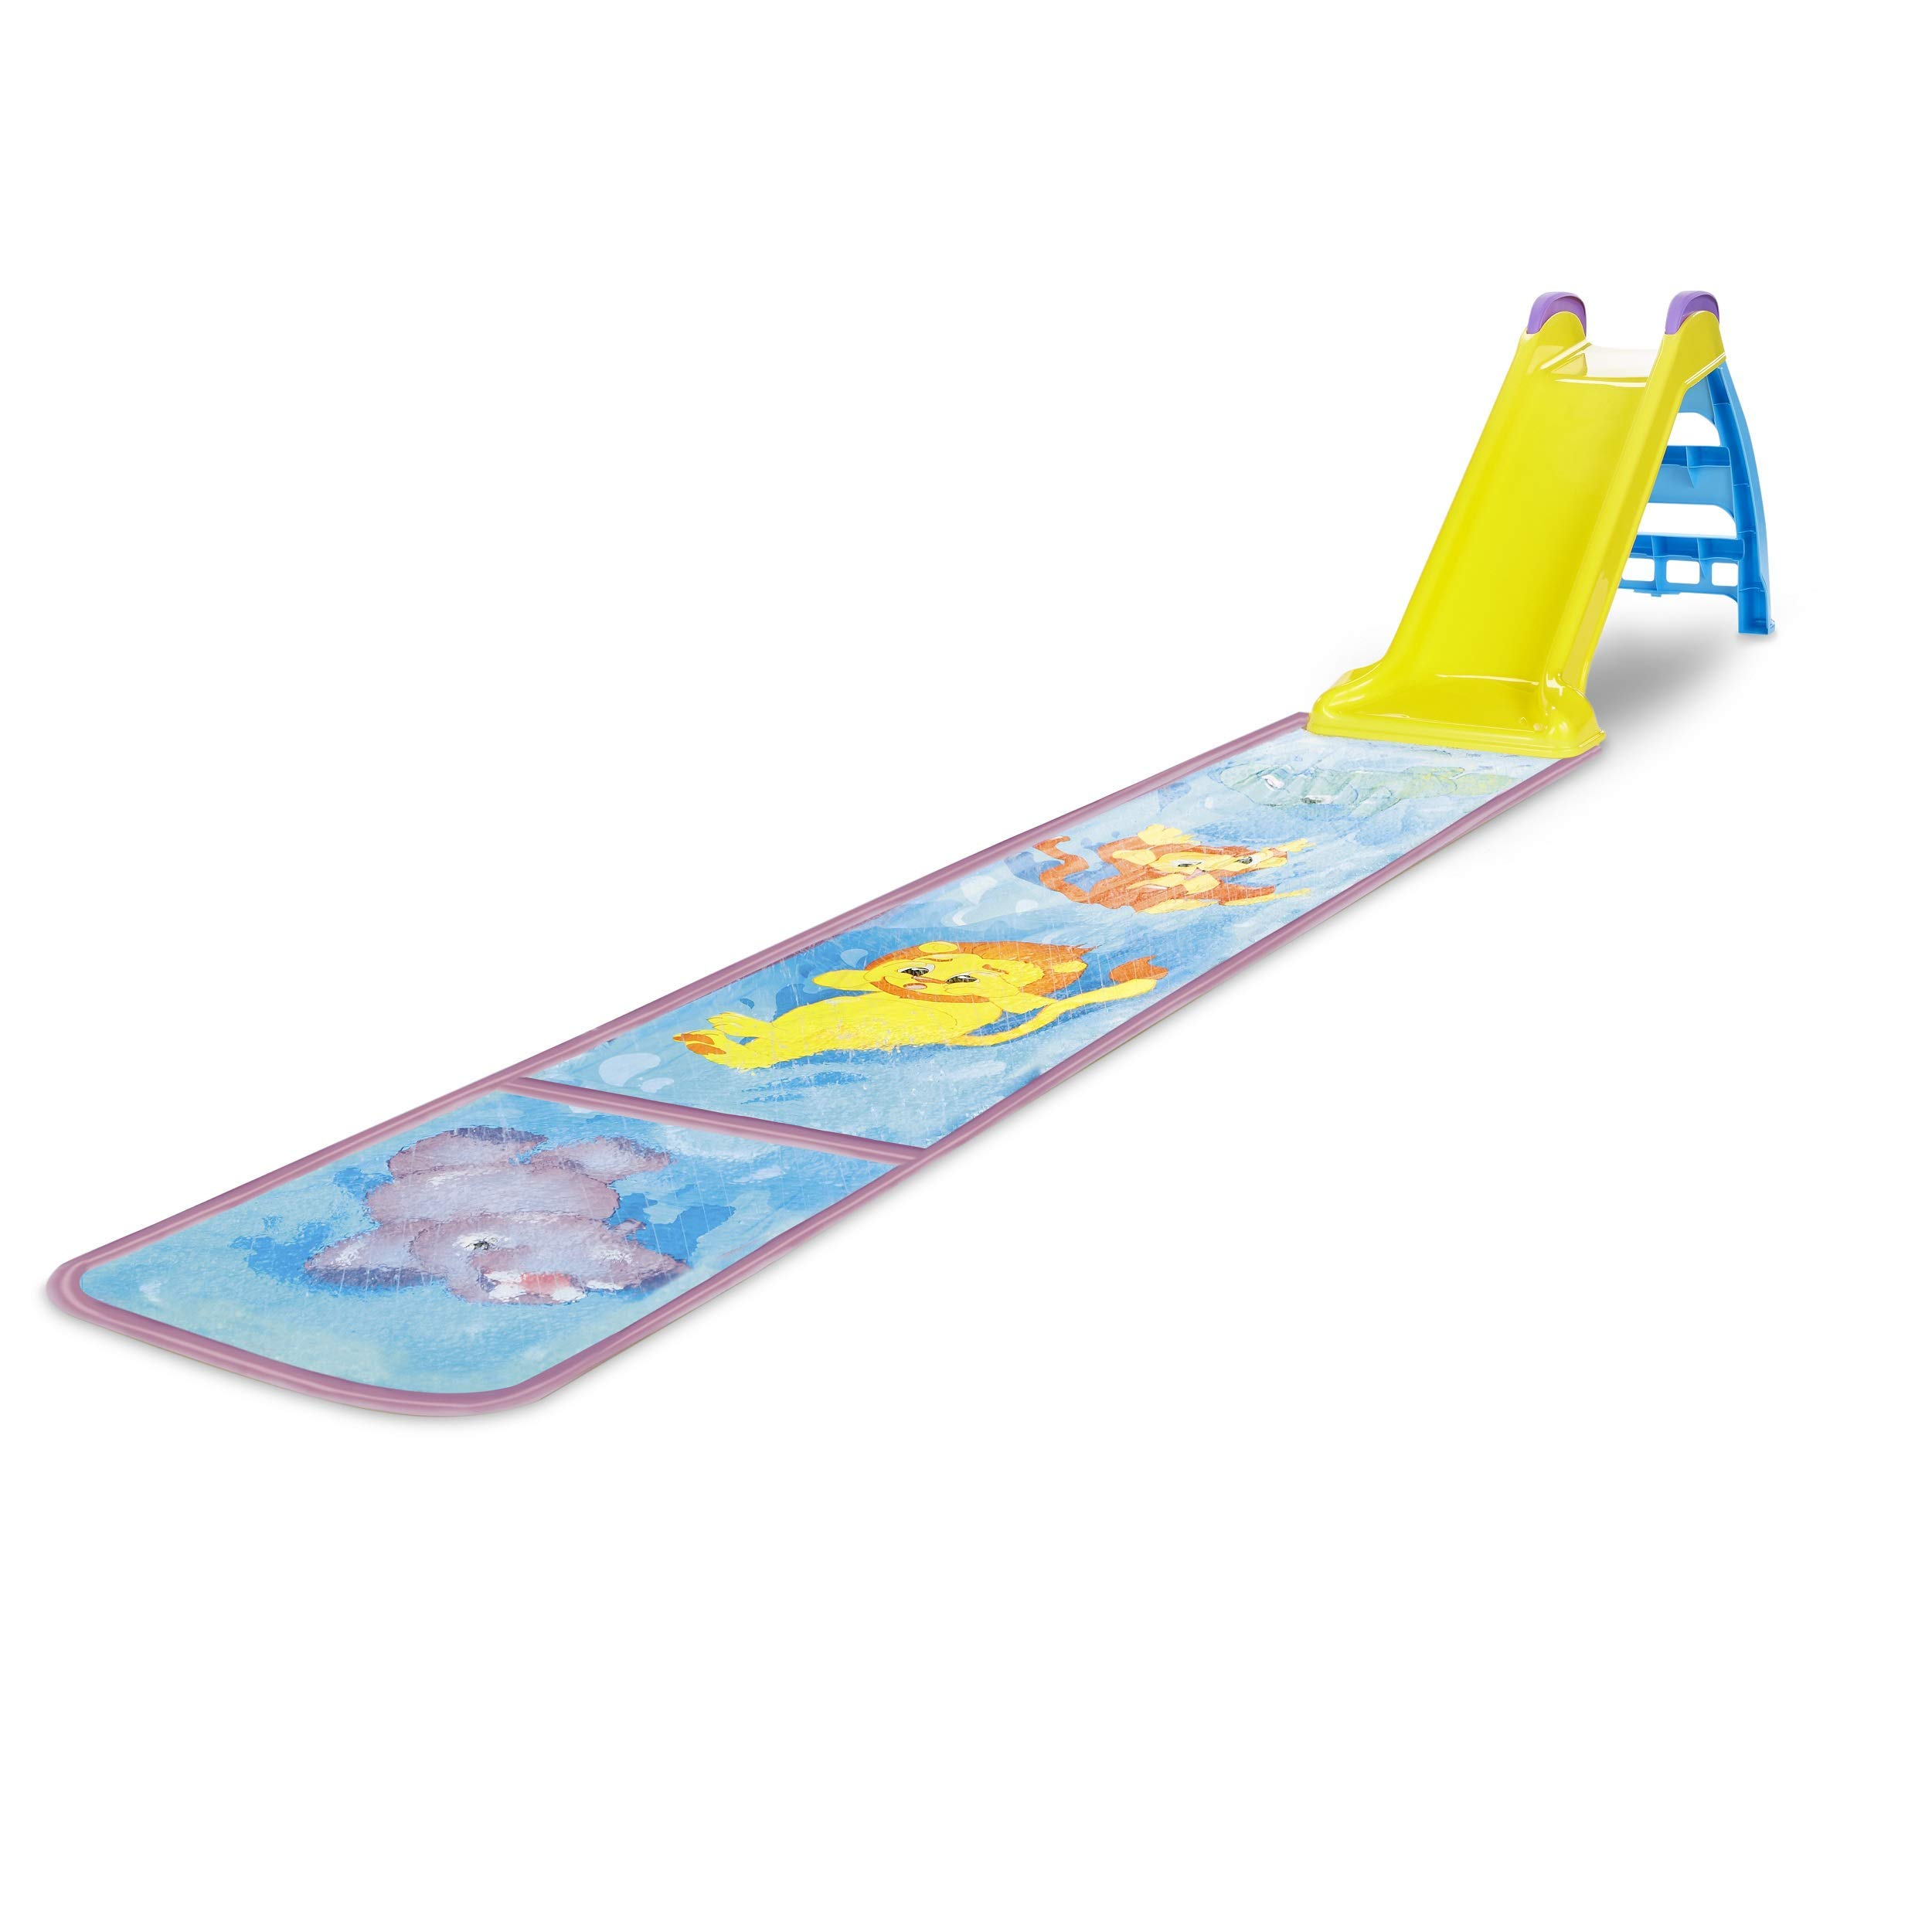 Little Tikes Wet & Dry First Slide - Amazon Exclusive (Renewed) by Little Tikes